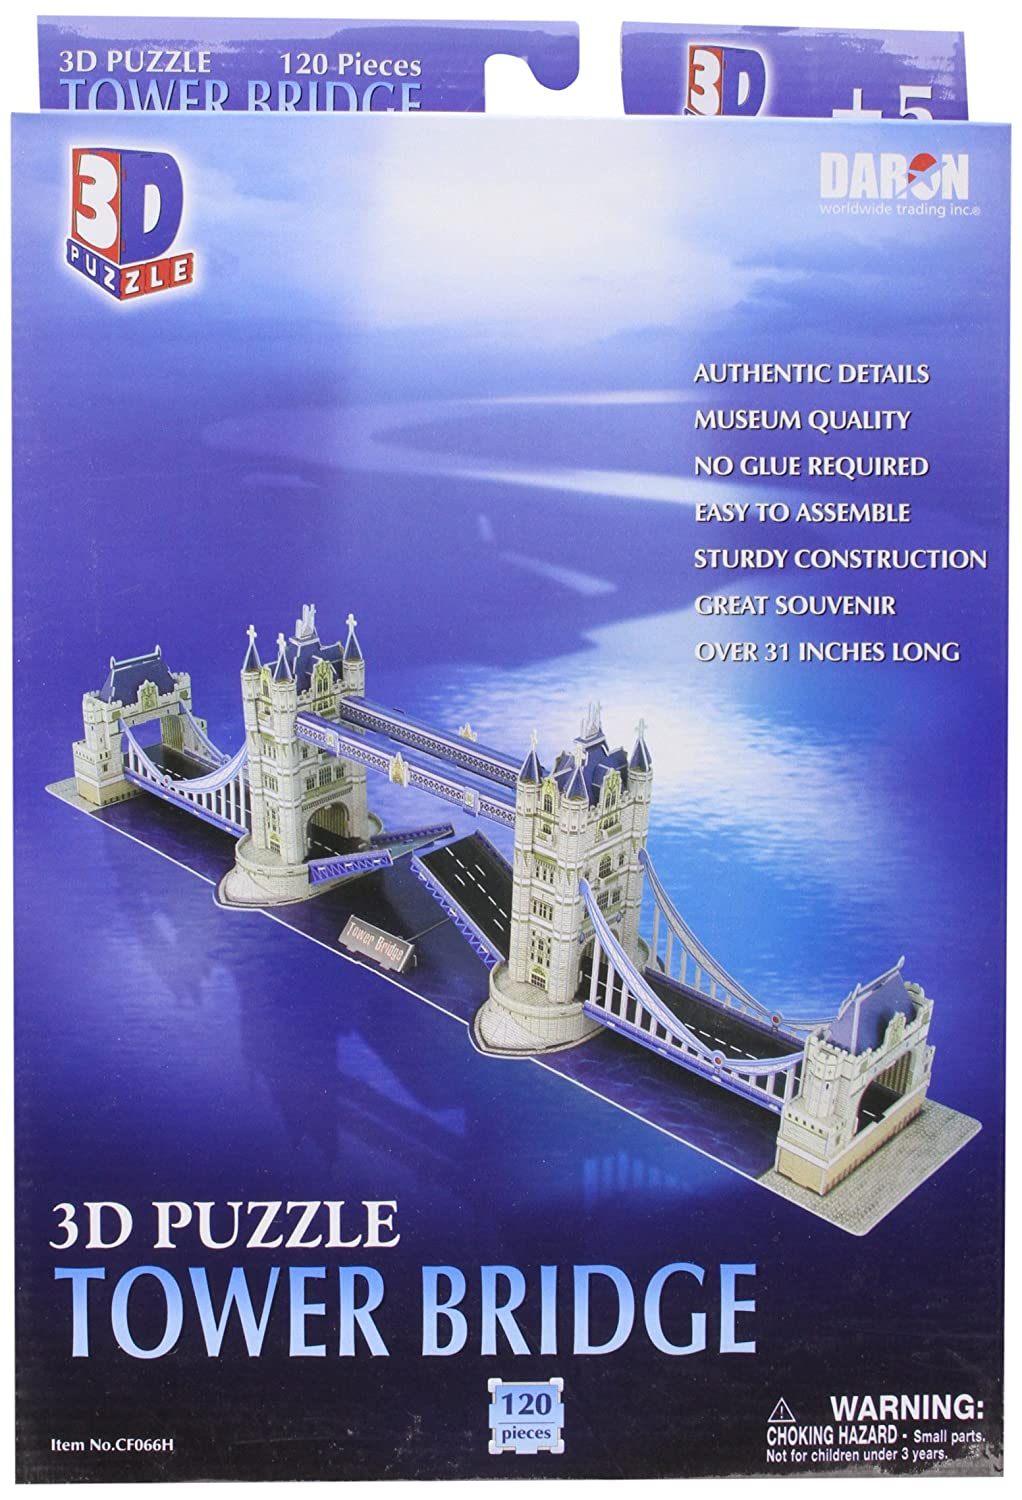 London Tower Bridge, 120 Piece 3D Jigsaw Puzzle Made by 3D-Puzzle CF066H